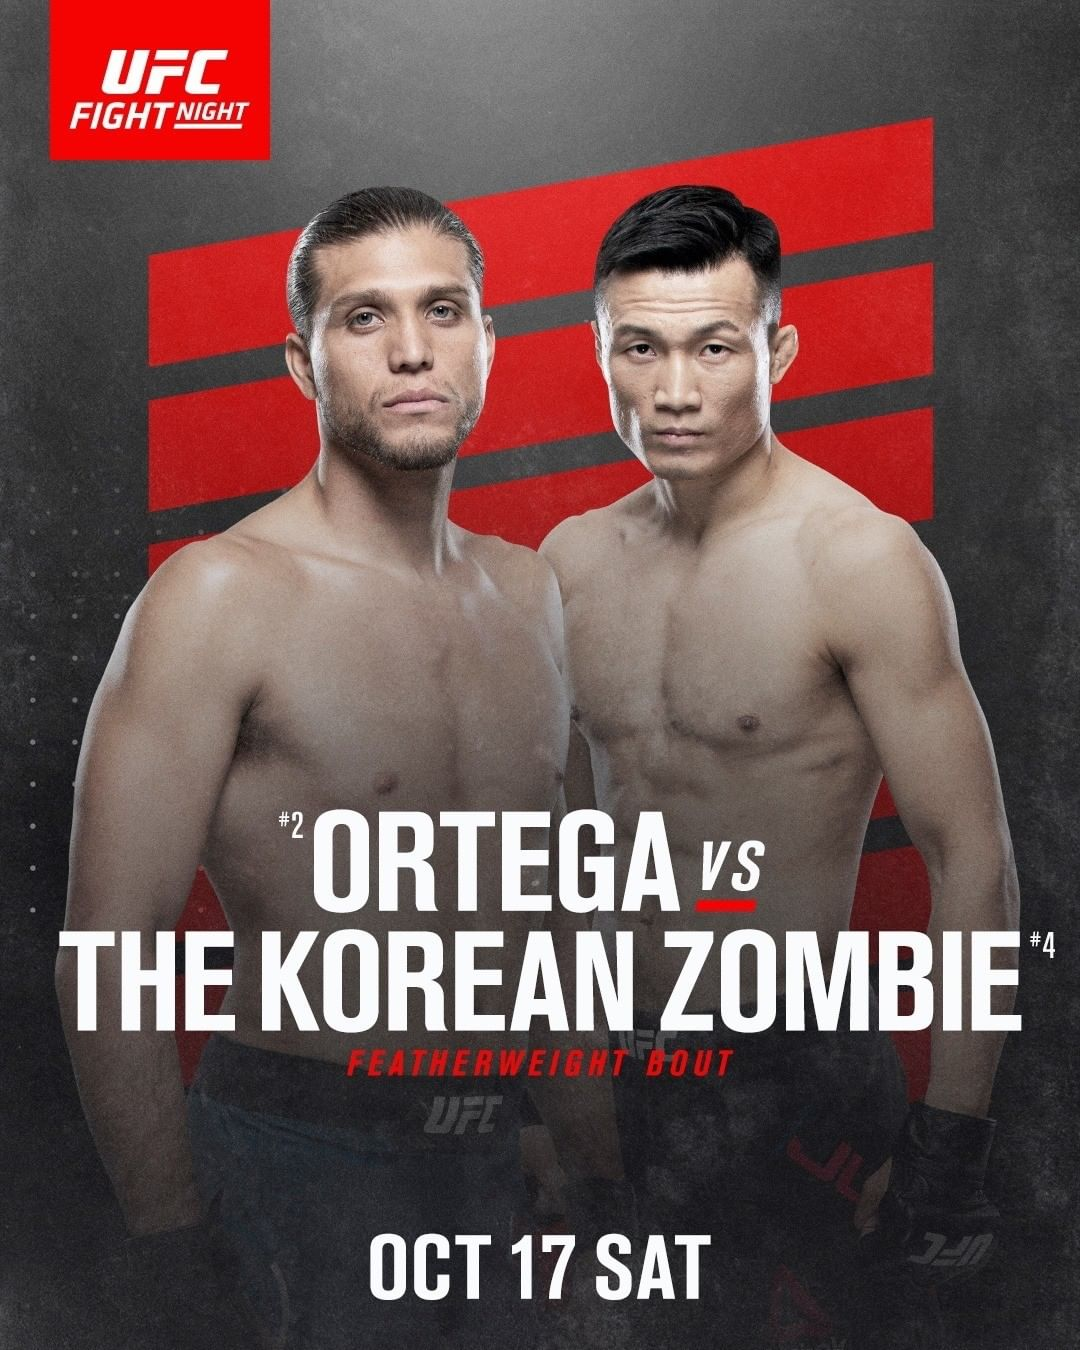 poster for UFC Fight Night 180